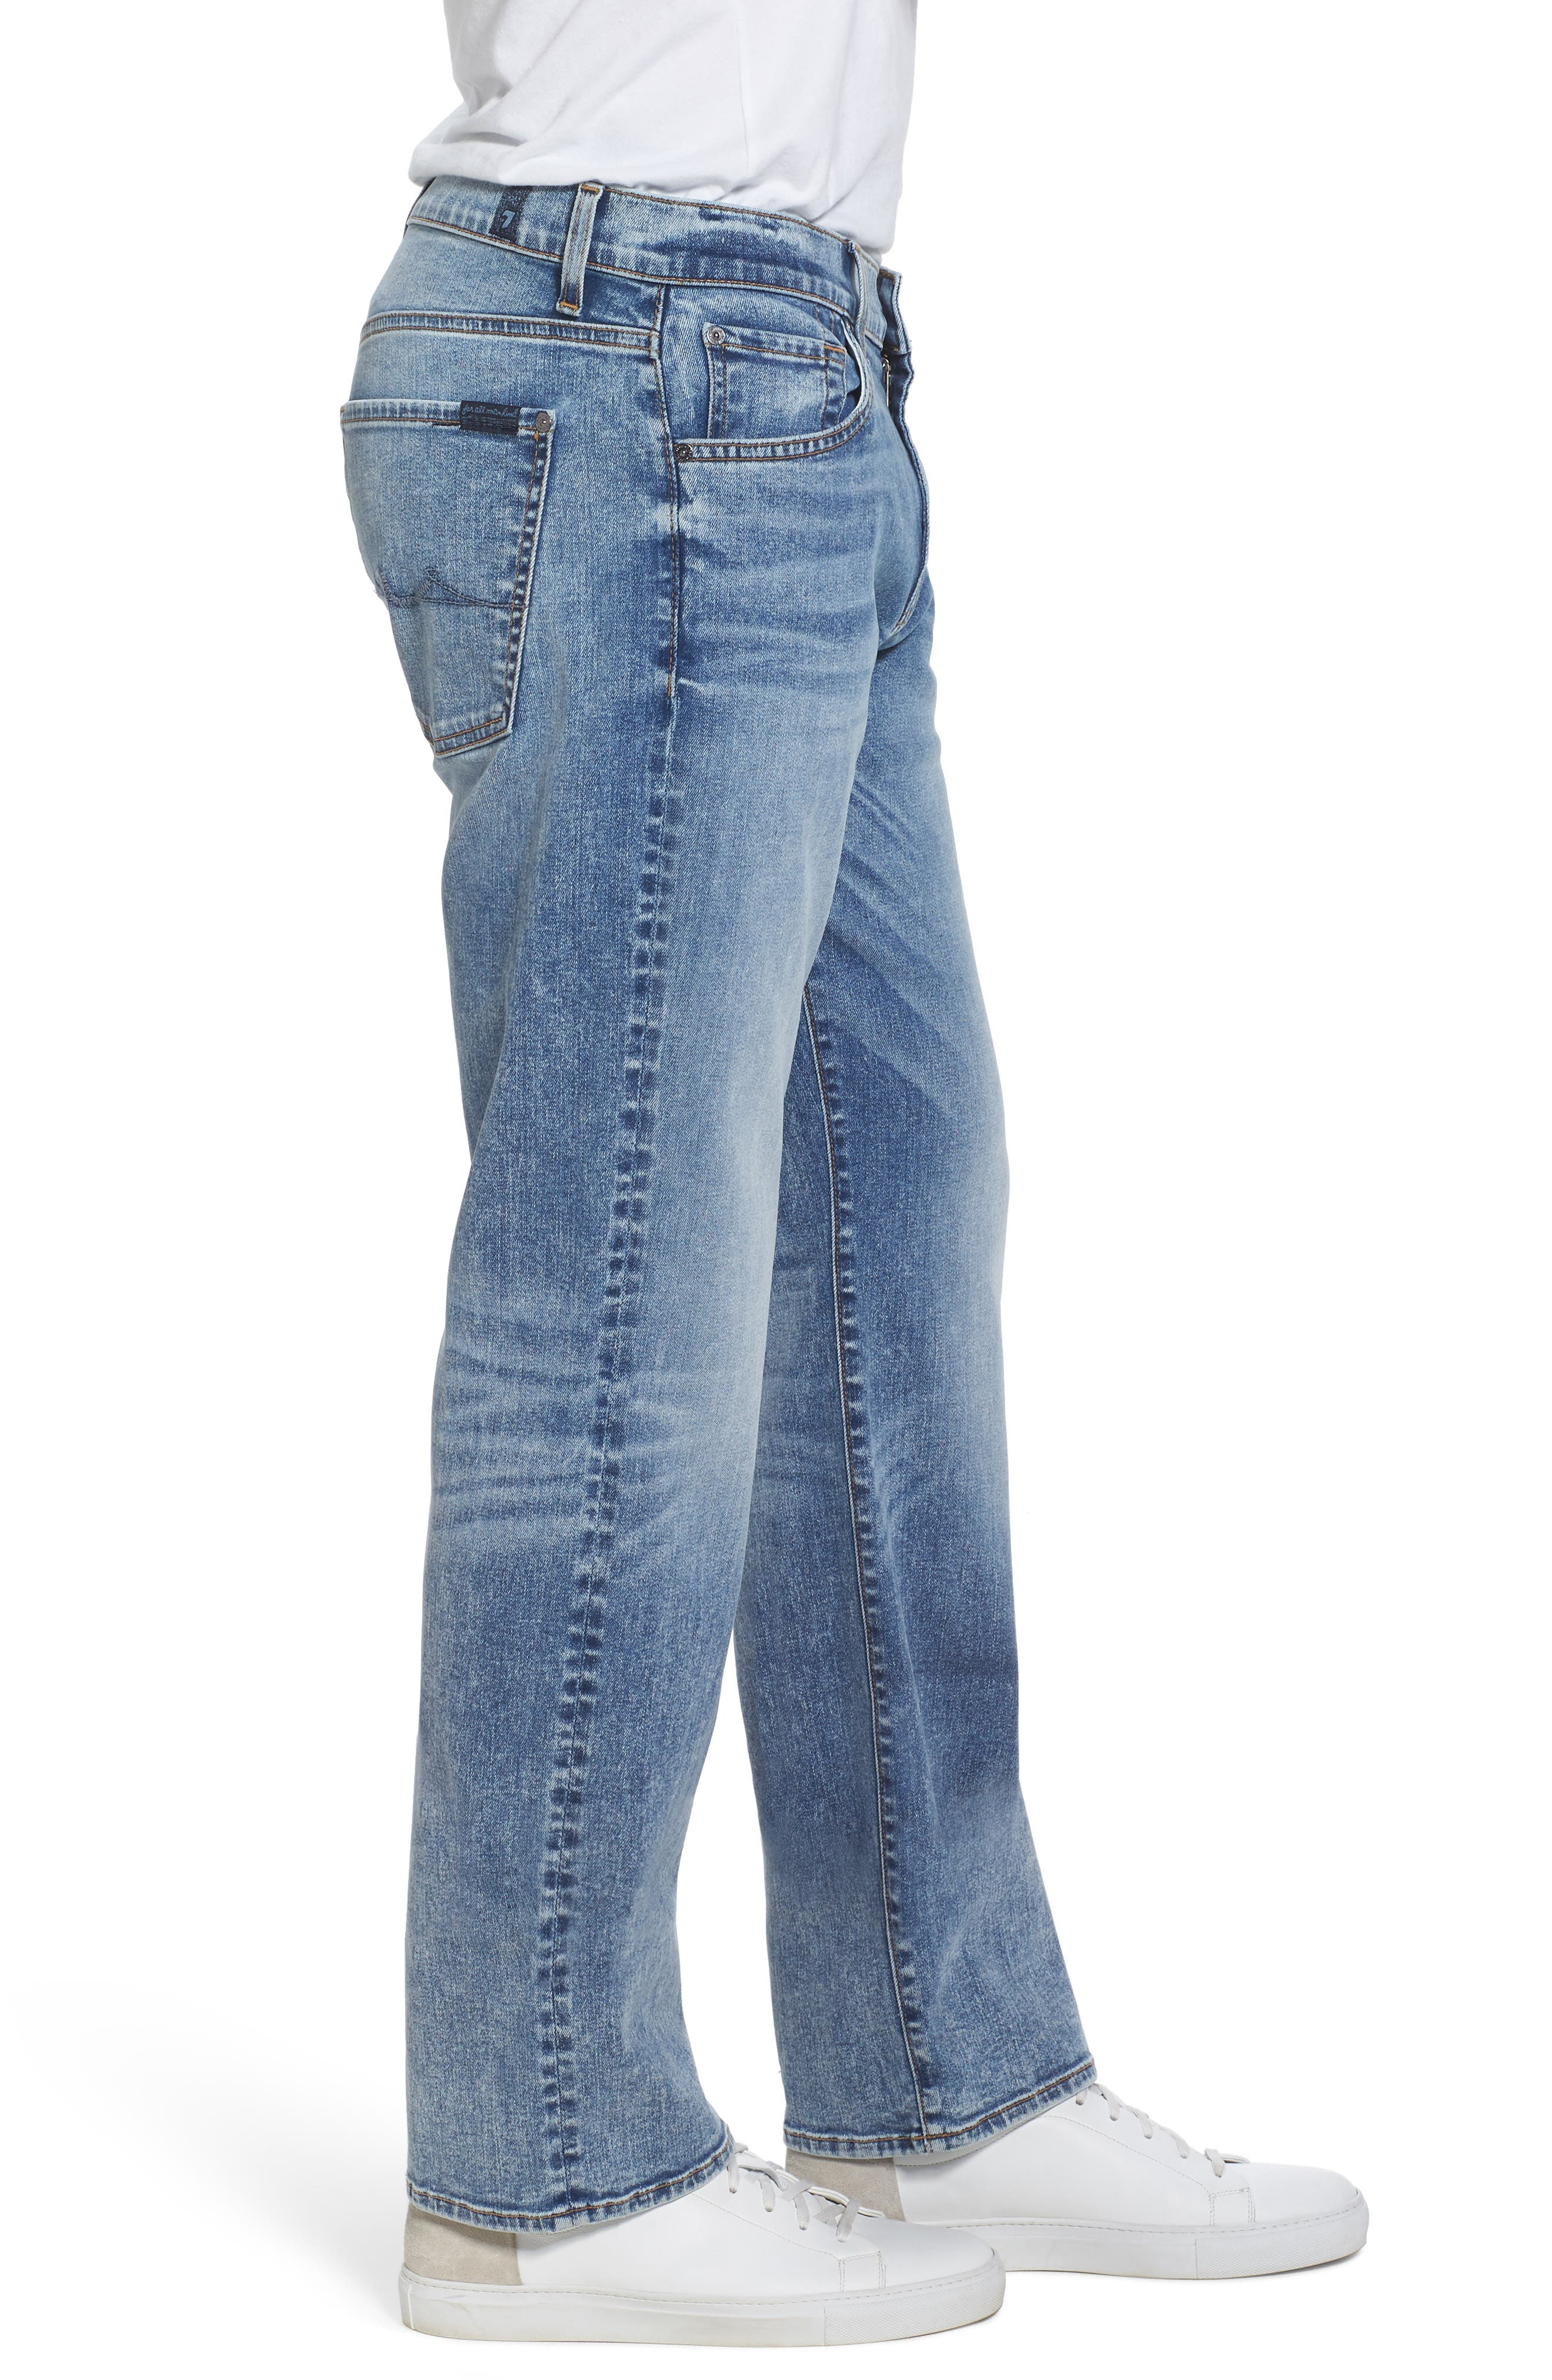 Austyn - Luxe Performance Relaxed Fit Jeans,                             Alternate thumbnail 3, color,                             Death Valley